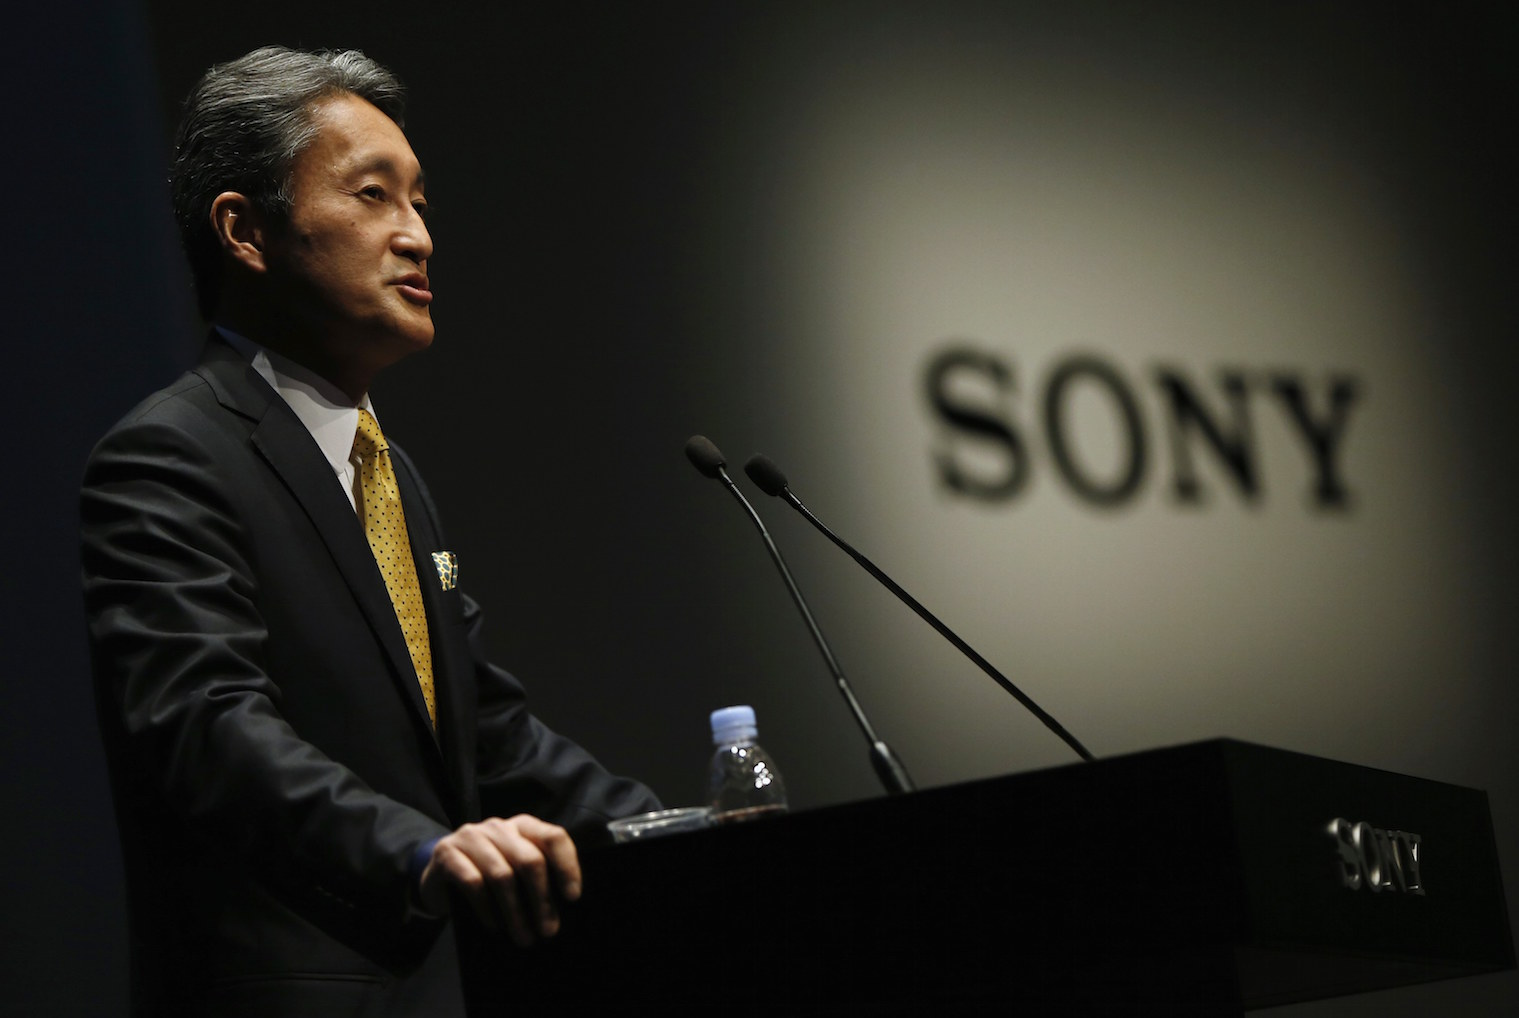 Sony Apr.-June net profit almost quadruples on semiconductor recovery